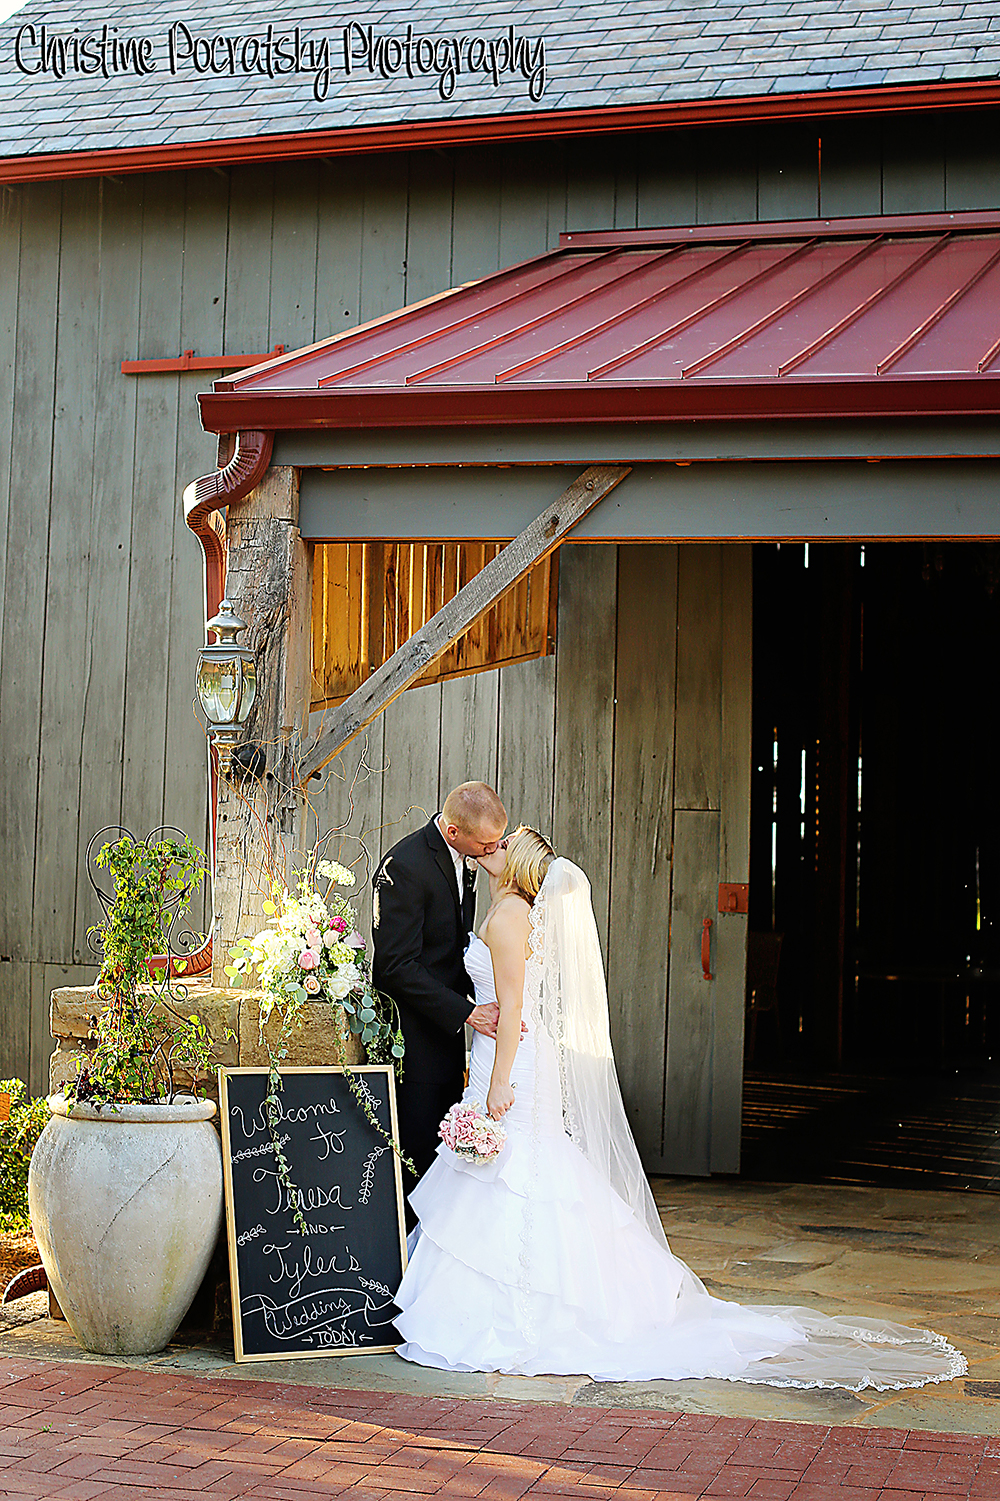 Phot Bride and groom kissing in front of barn.